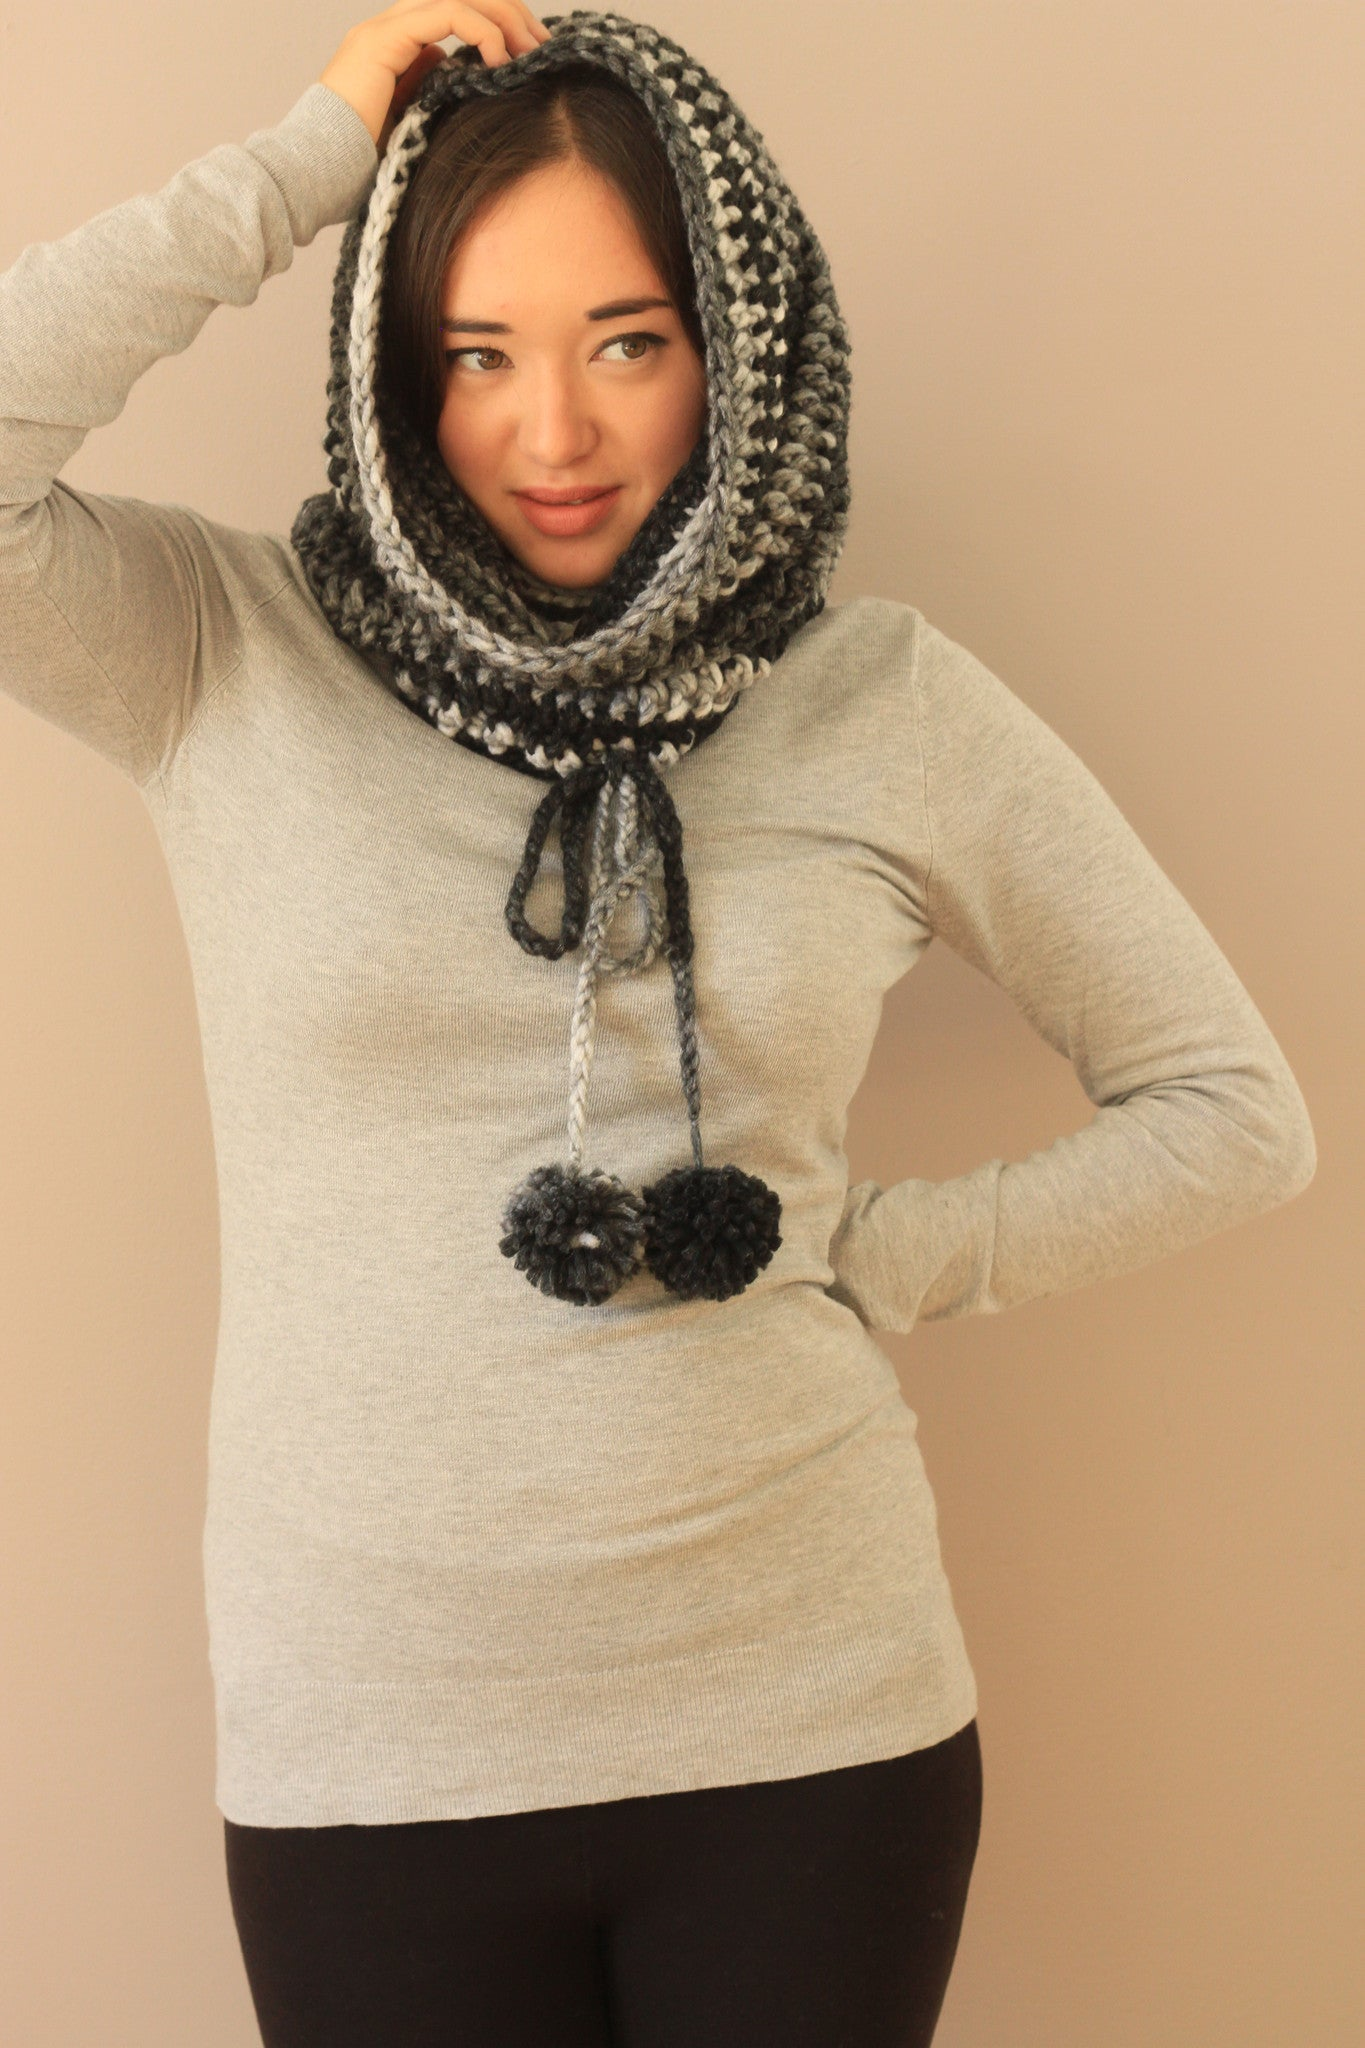 hooded cowl warm cozy crochet knitted winter wear